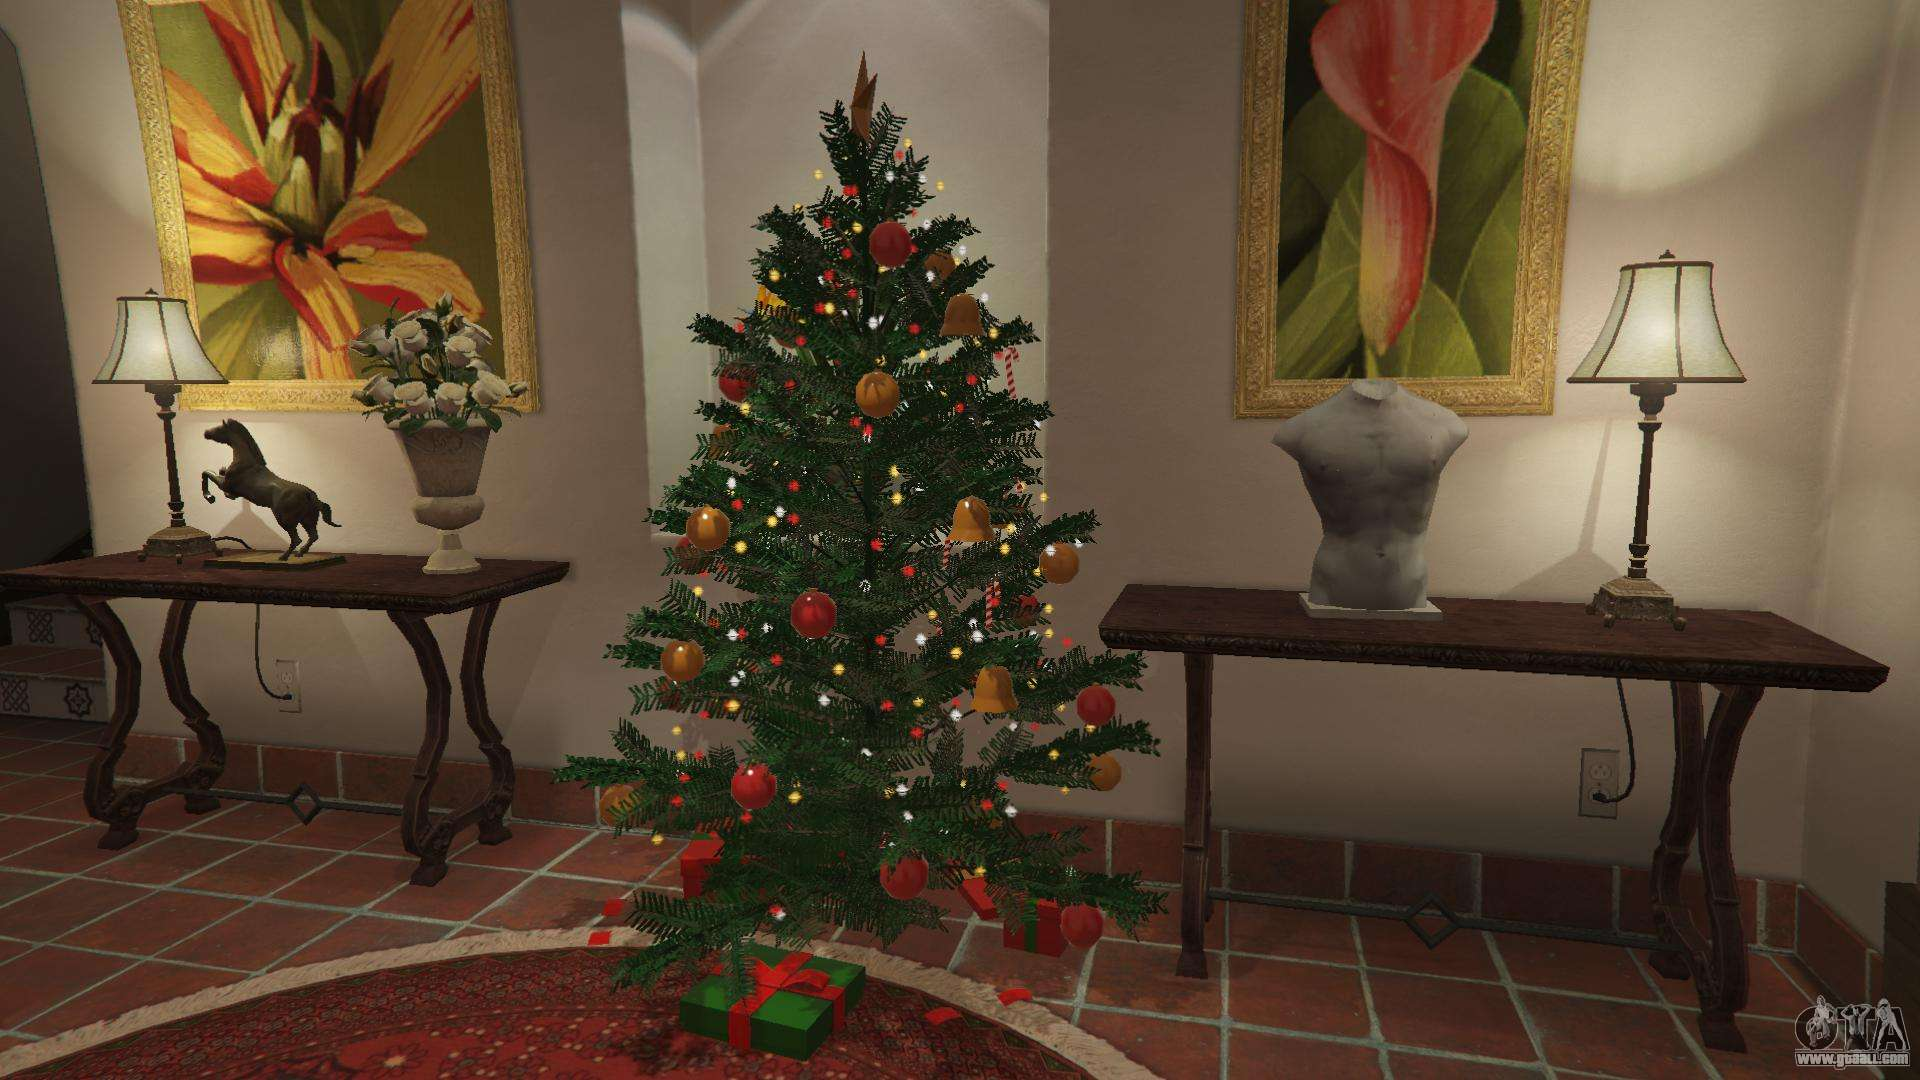 gta 5 christmas decorations for michaels house sixth screenshot